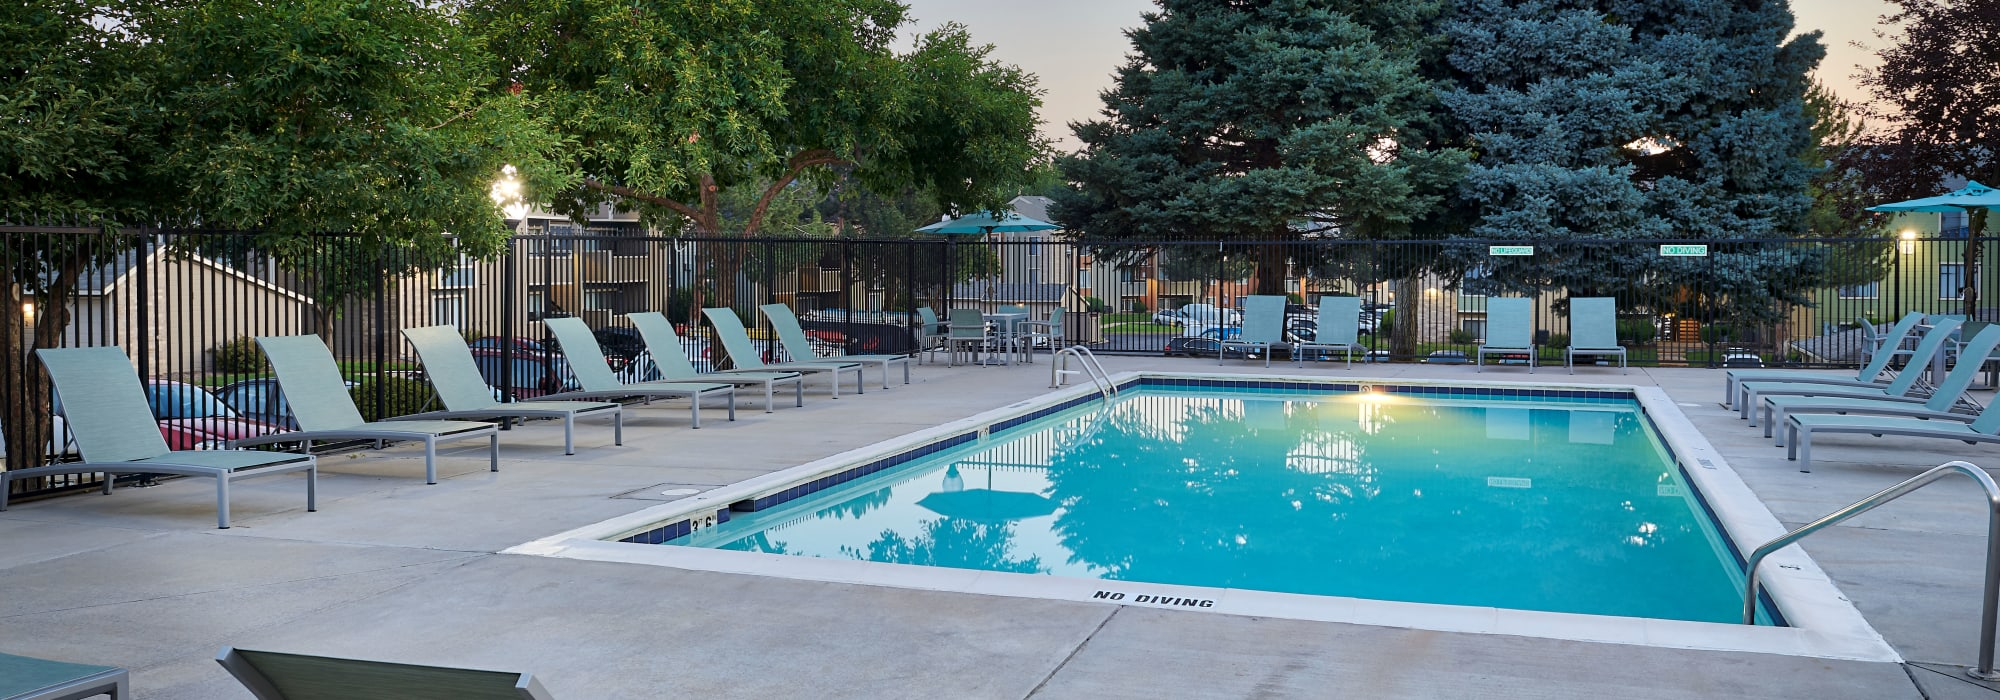 Privacy policy of Alton Green Apartments in Denver, Colorado